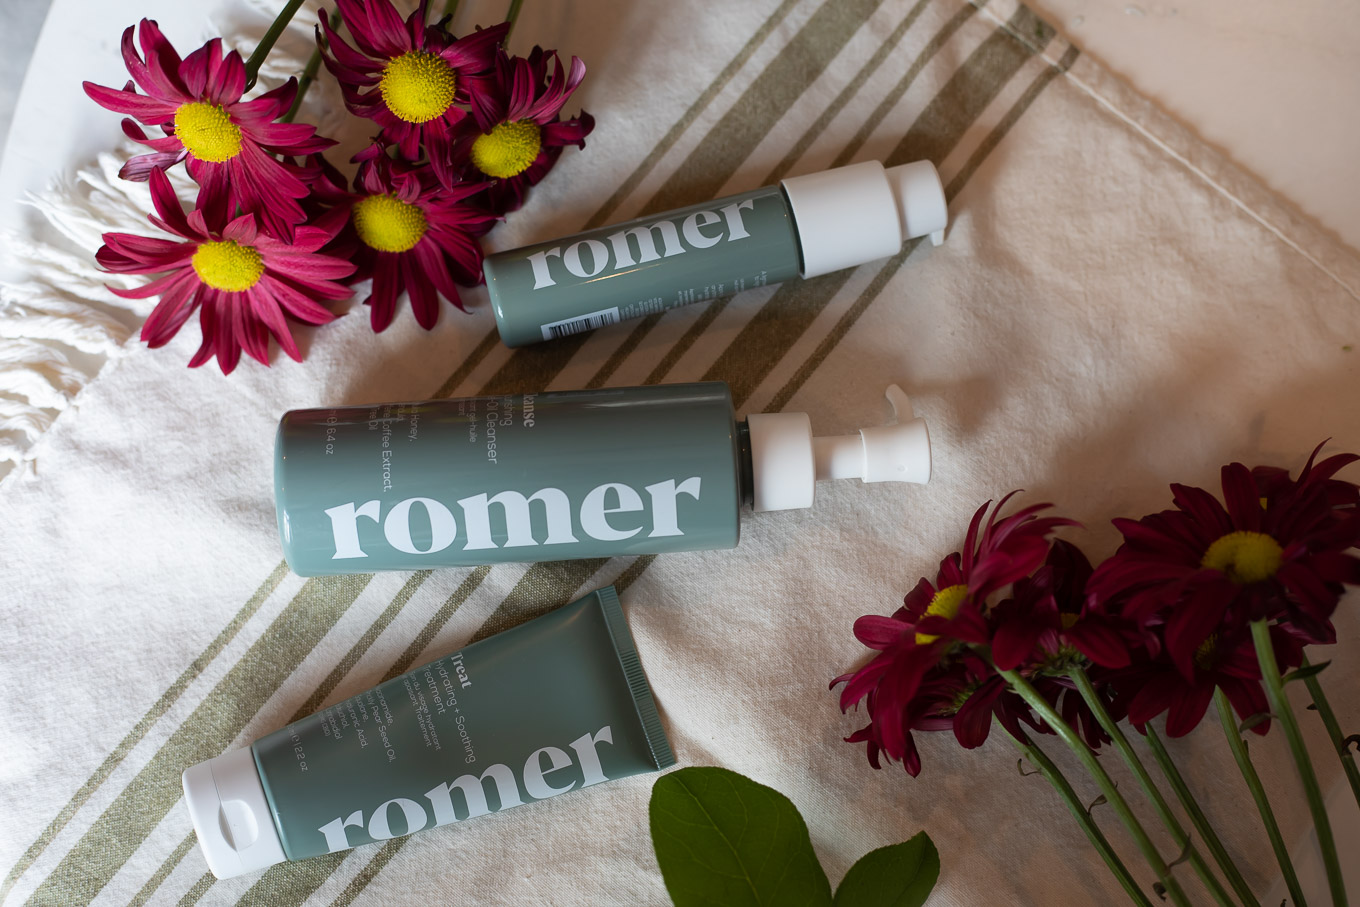 Romer Skincare by popular Chicago beauty blog, Glass of Glam: image of Romer Skincare products laying next to some purple daisies.